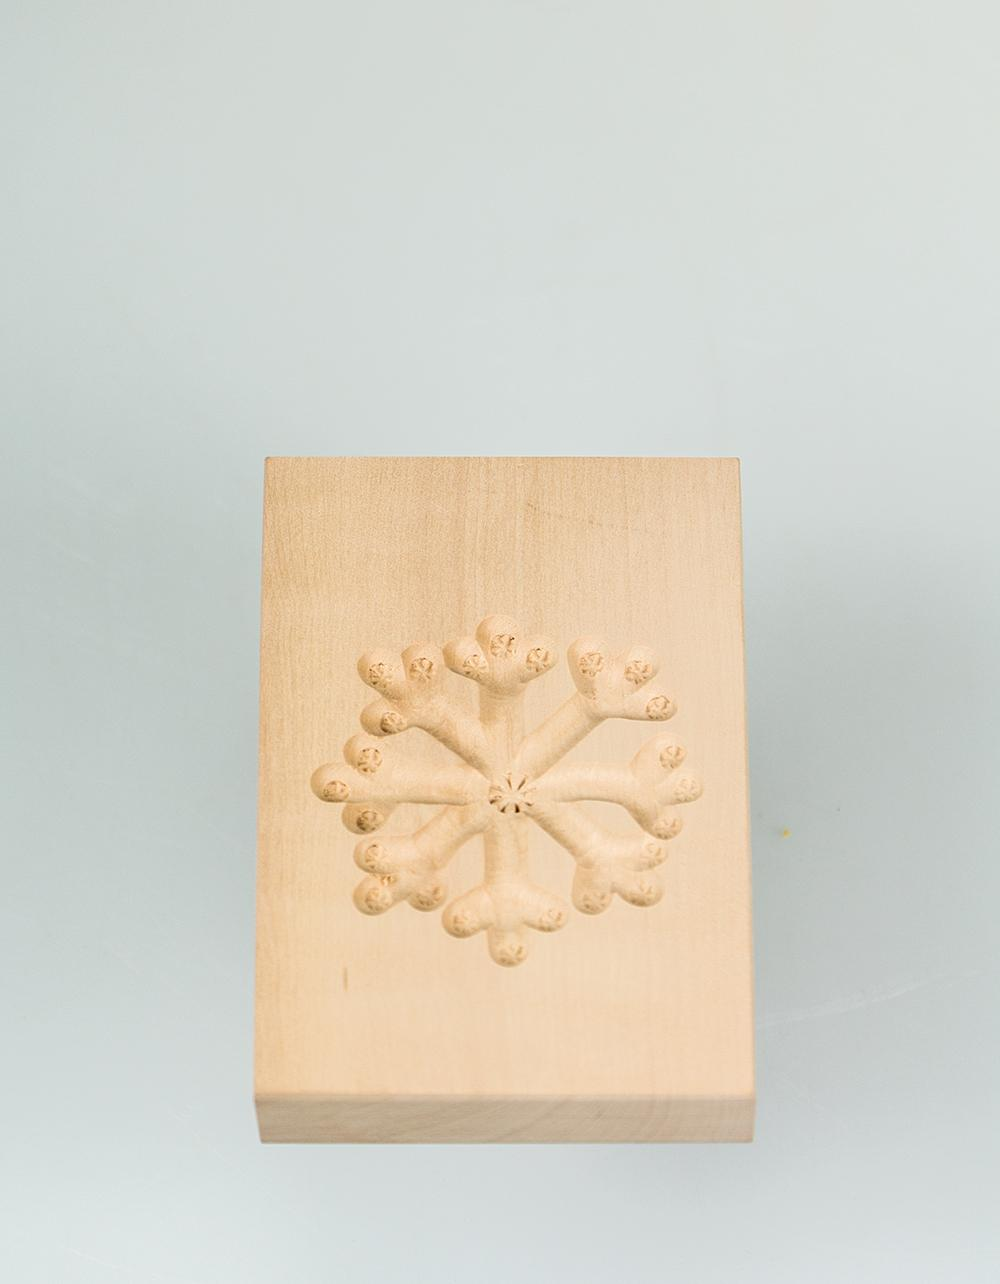 The Essential Ingredient Pear Wood Shortbread Mould - Ice Crystal Design 6cm x 8